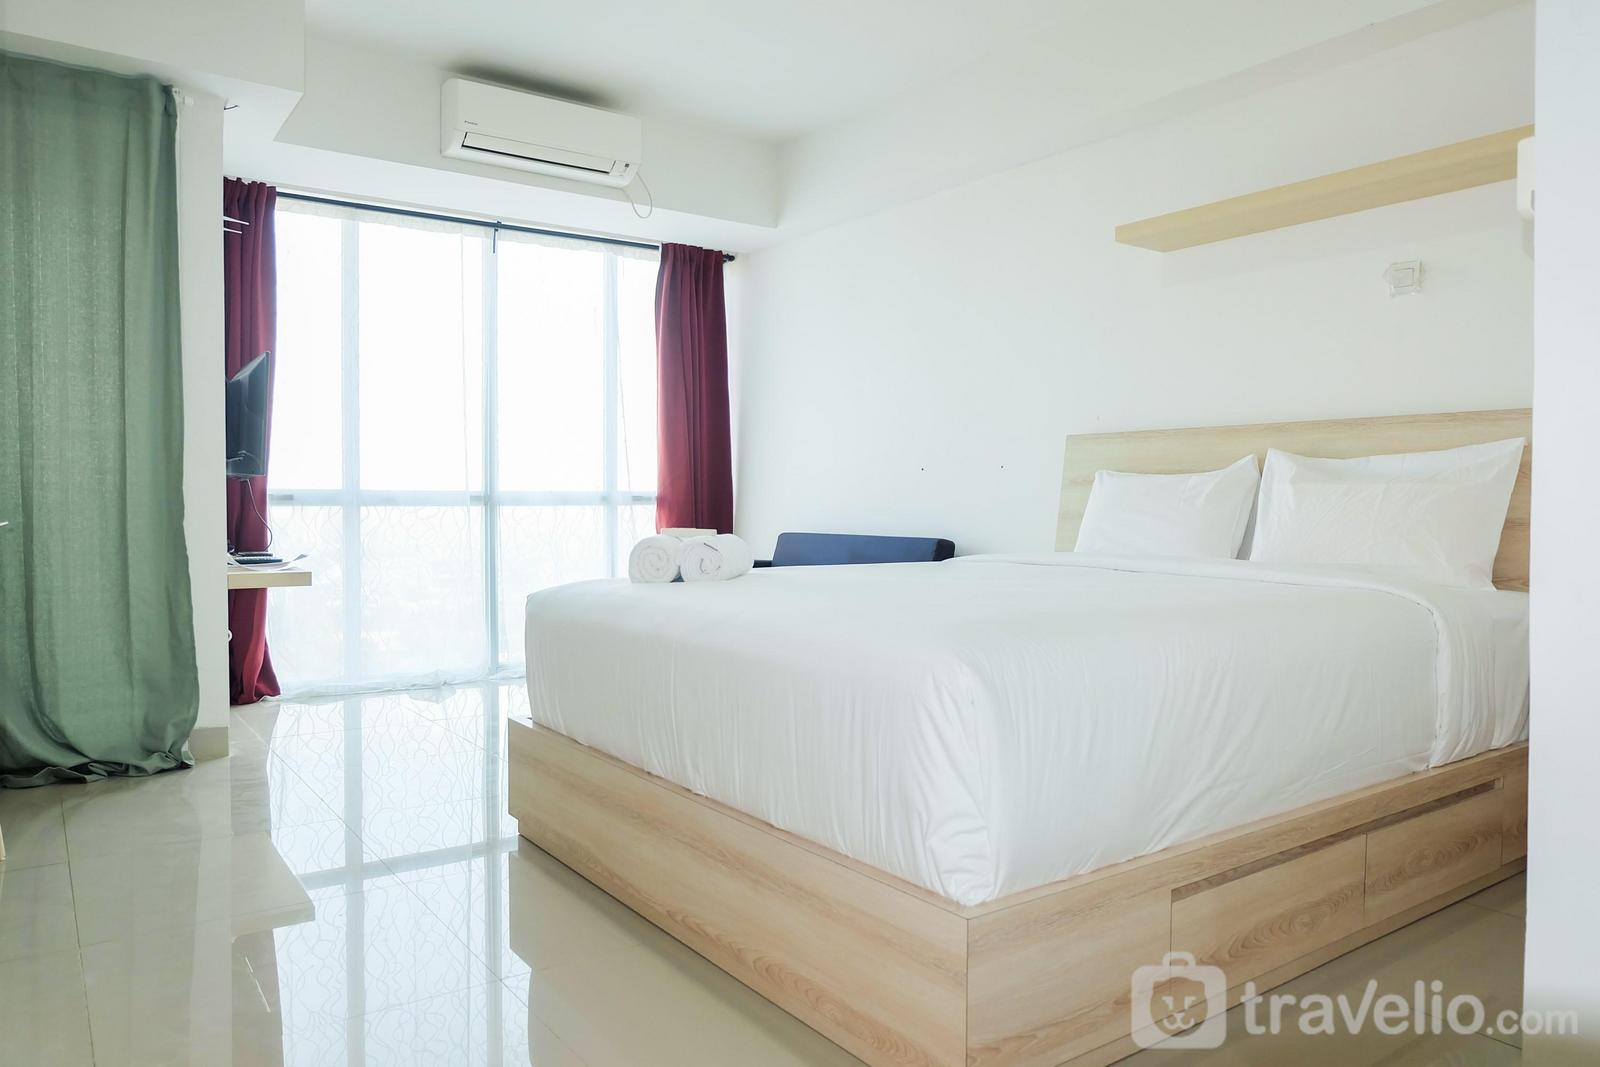 H Residence - City View Studio Apartment at H Residence MT Haryono By Travelio